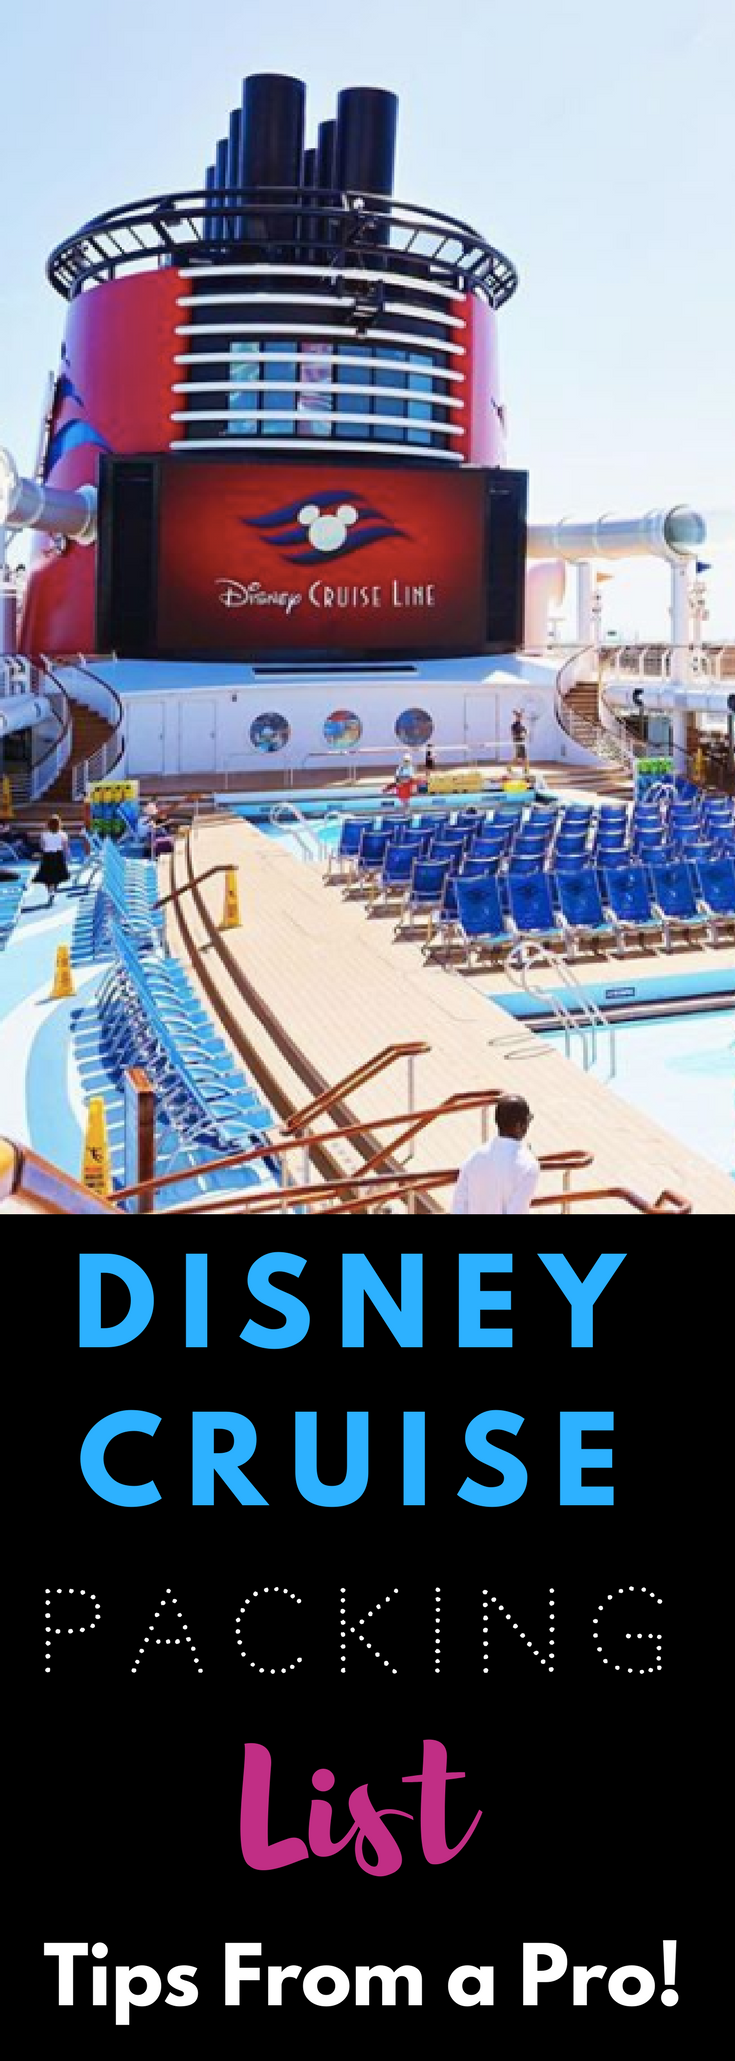 The ULTIMATE Disney Cruise Packing List. This is the BEST list for families and it includes a FREE printable to make packing easy! #disneycruise #disney #cruise #packinglist